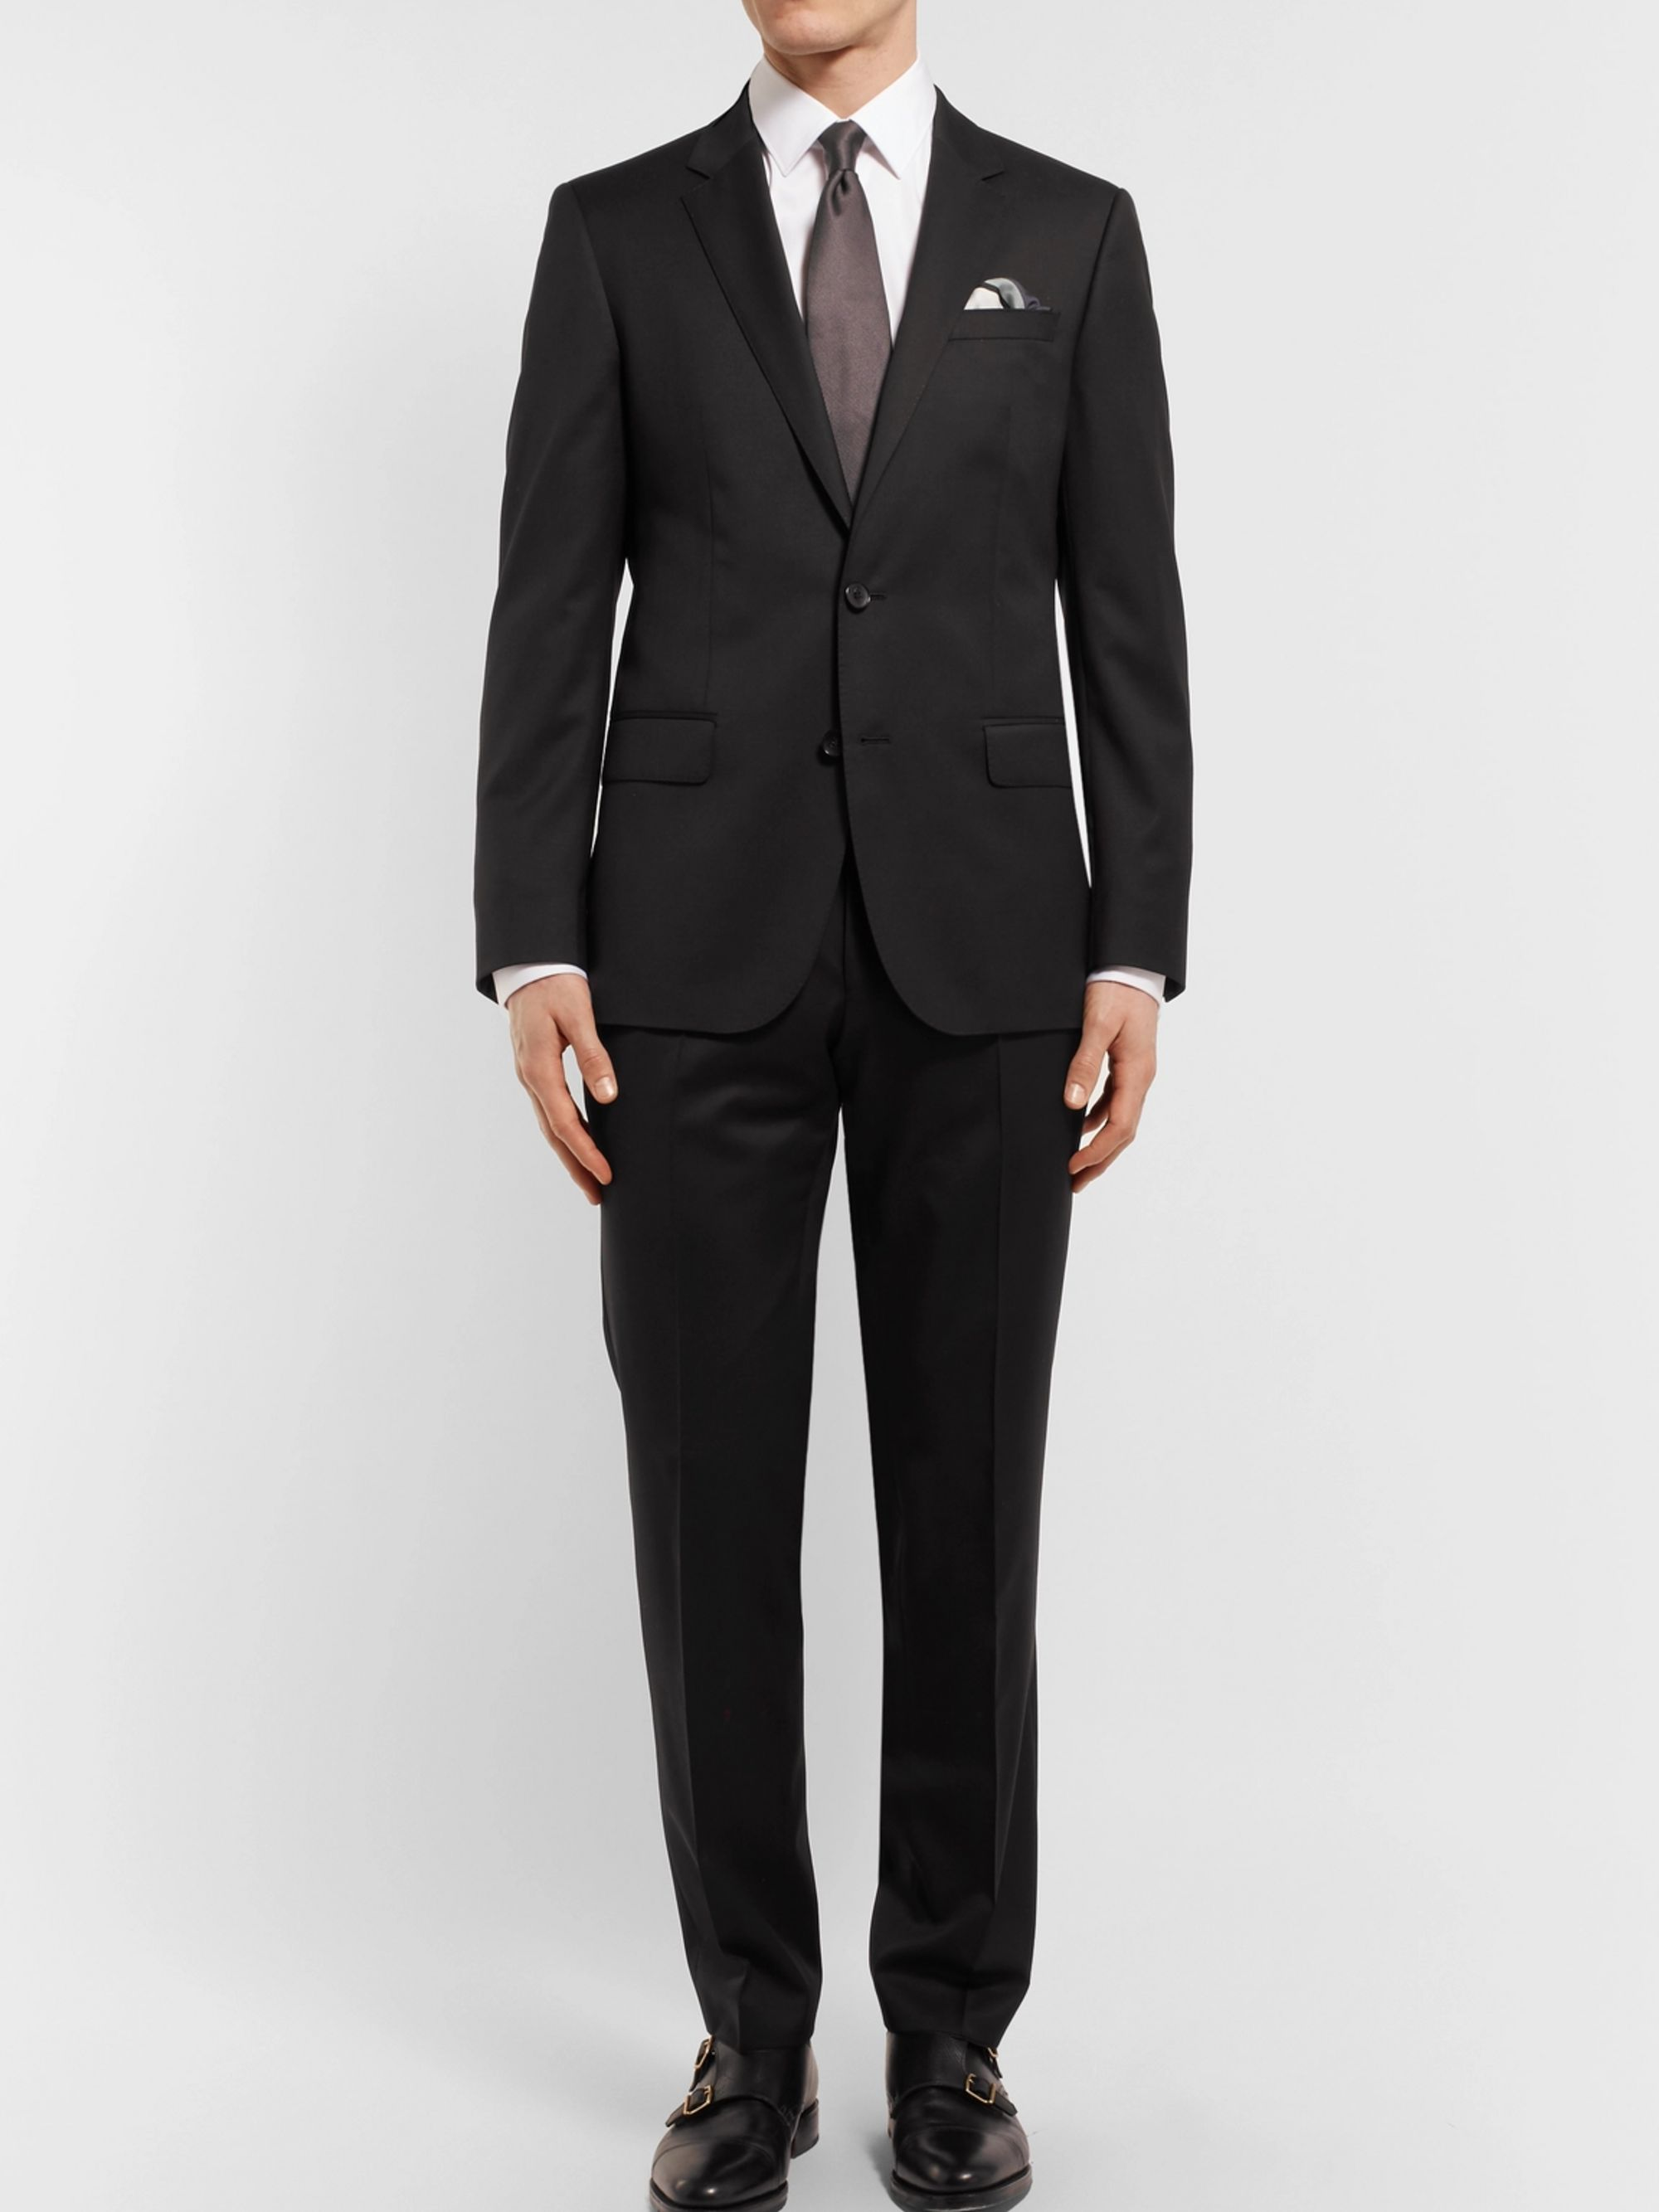 Hugo Boss Black Hayes Slim-Fit Super 120s Virgin Wool Suit Jacket